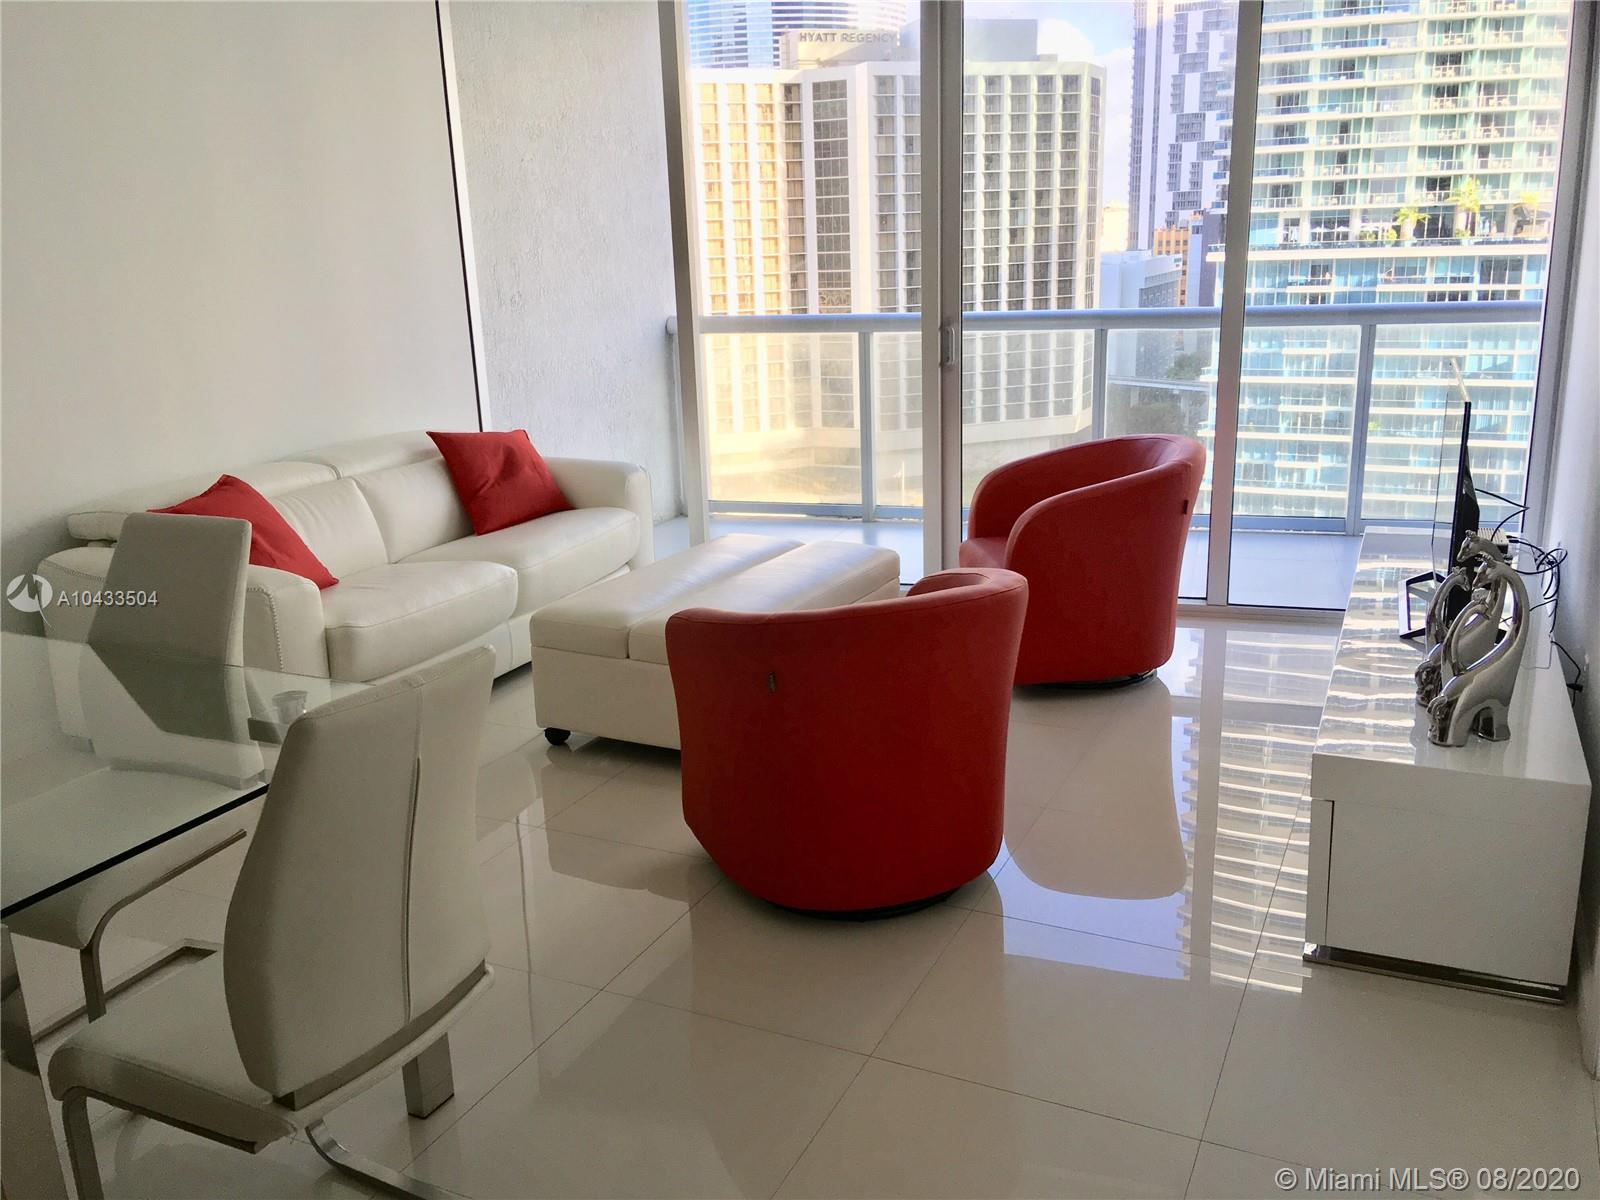 Welcome Home! Relax and Enjoy your stay in this gorgeous all-white modern 1 bedroom apartment located at the luxury Icon Brickell Tower three, where the W hotel is also located. CAN BE RENTED DAILY, WEEKLY OR MONTHLY. We provide our guests all they need to have a pampering experience (towels, bed sheets, glassware, cooking utensils, and more). Free Internet and more. Valet parking is included only in monthly rentals. Contact Us for weekly and daily rates.